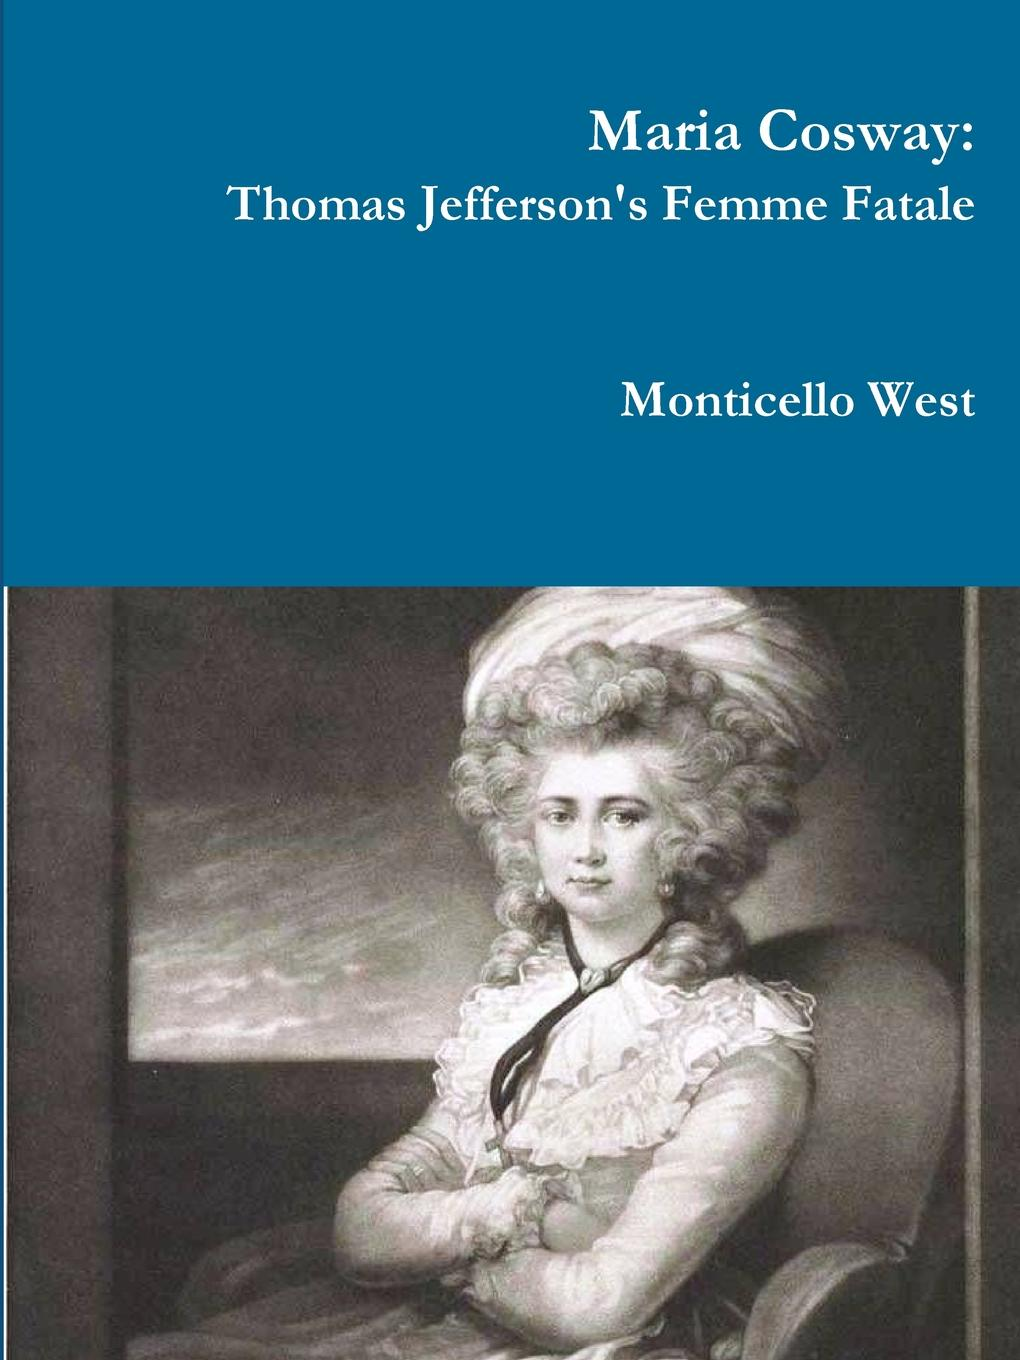 Monticello West Maria Cosway. Thomas Jefferson.s Femme Fatale or Failed Miniaturist Artist. maria sibylla merian artist scientist adventurer